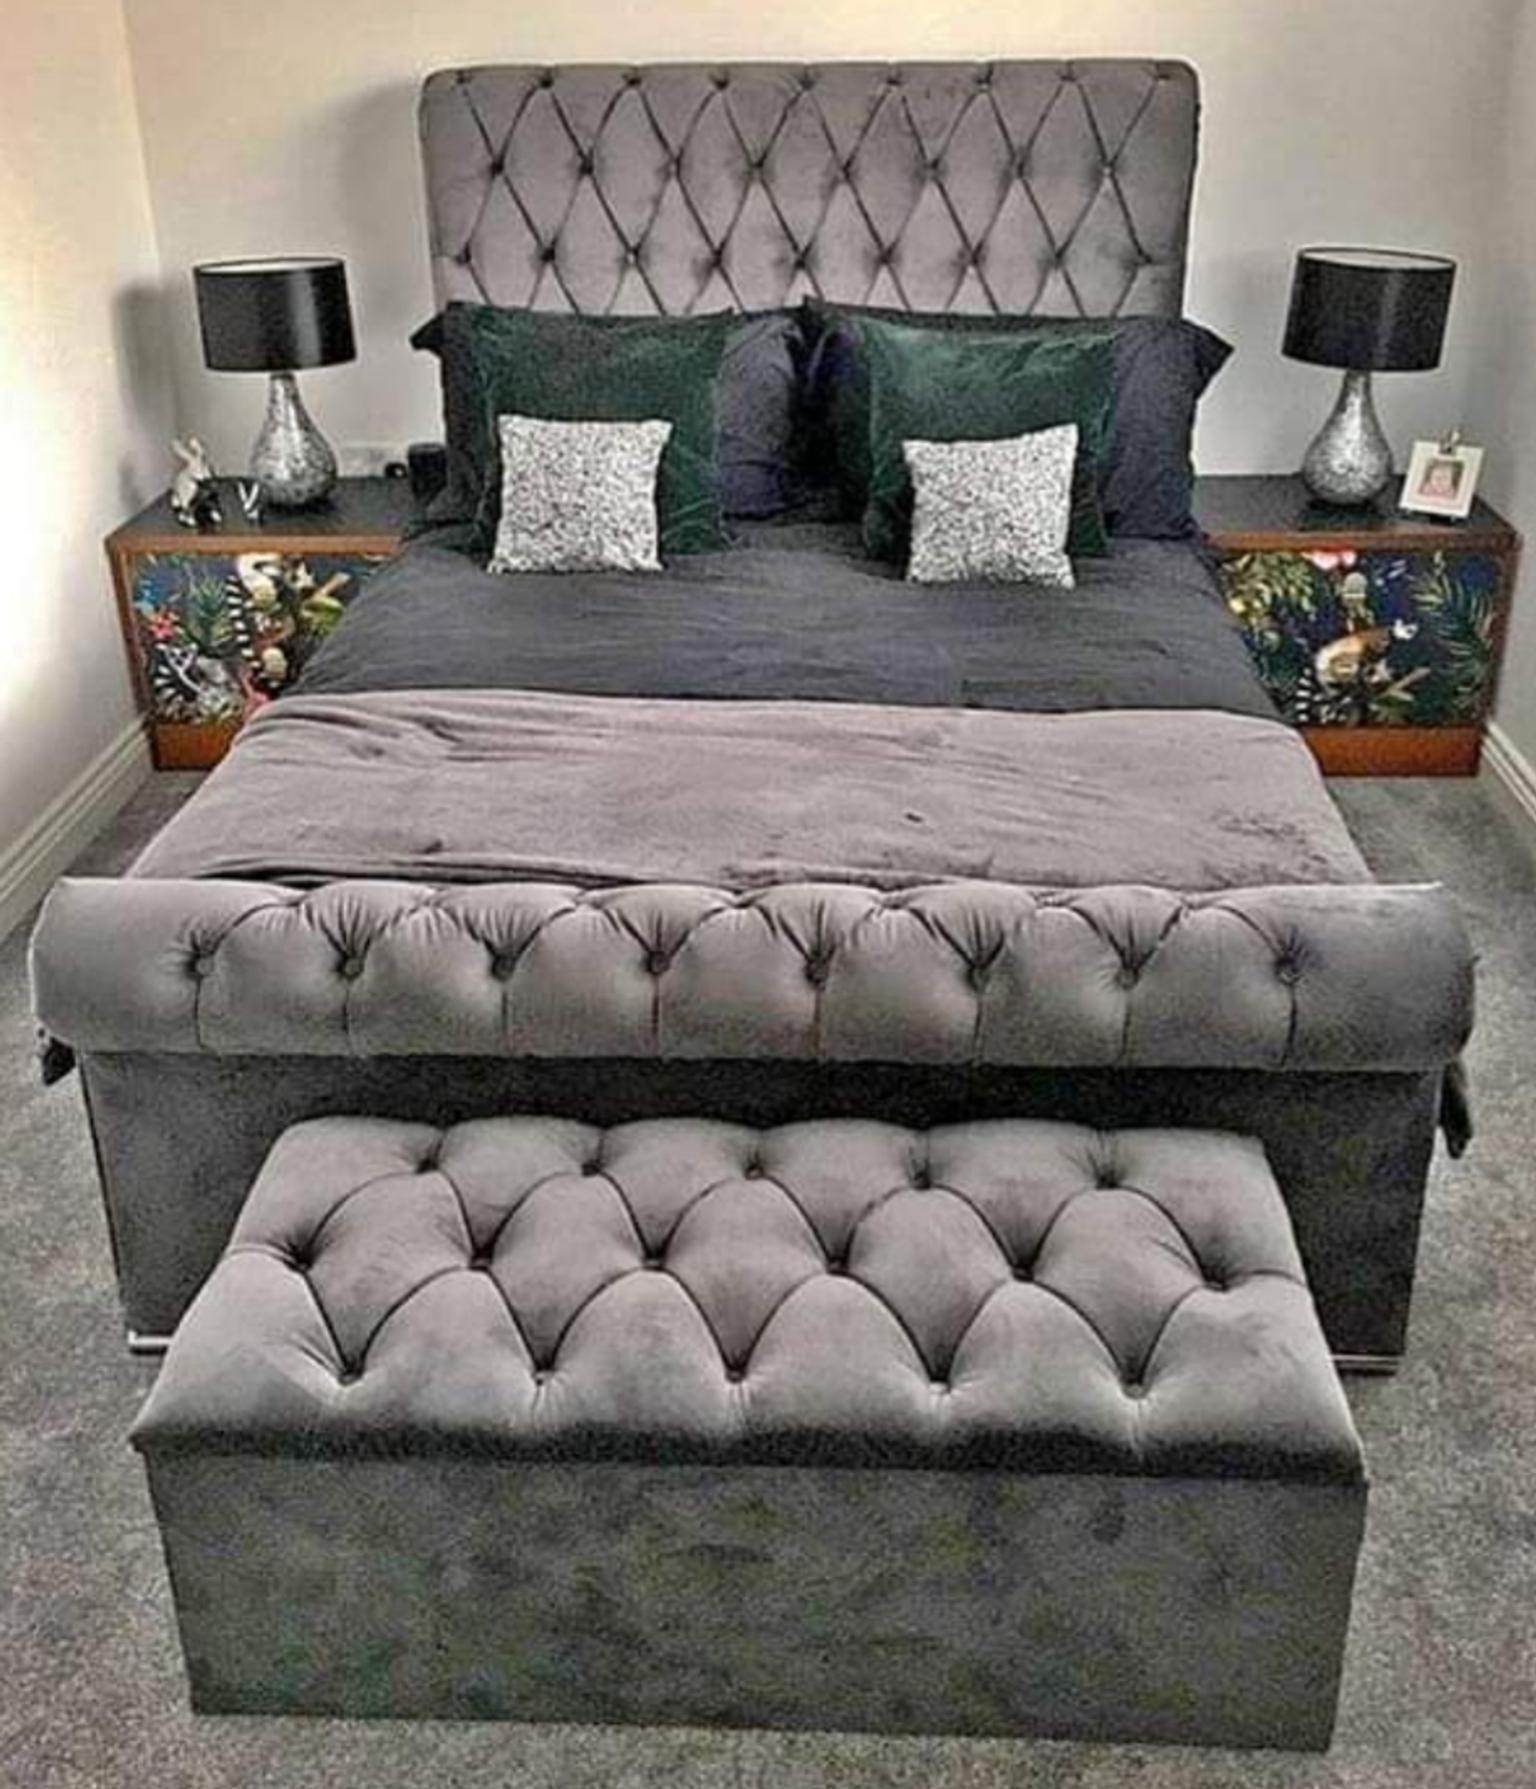 Double Plush Velvet Grey Sleigh Bed In Ws10 Sandwell For 250 00 For Sale Shpock